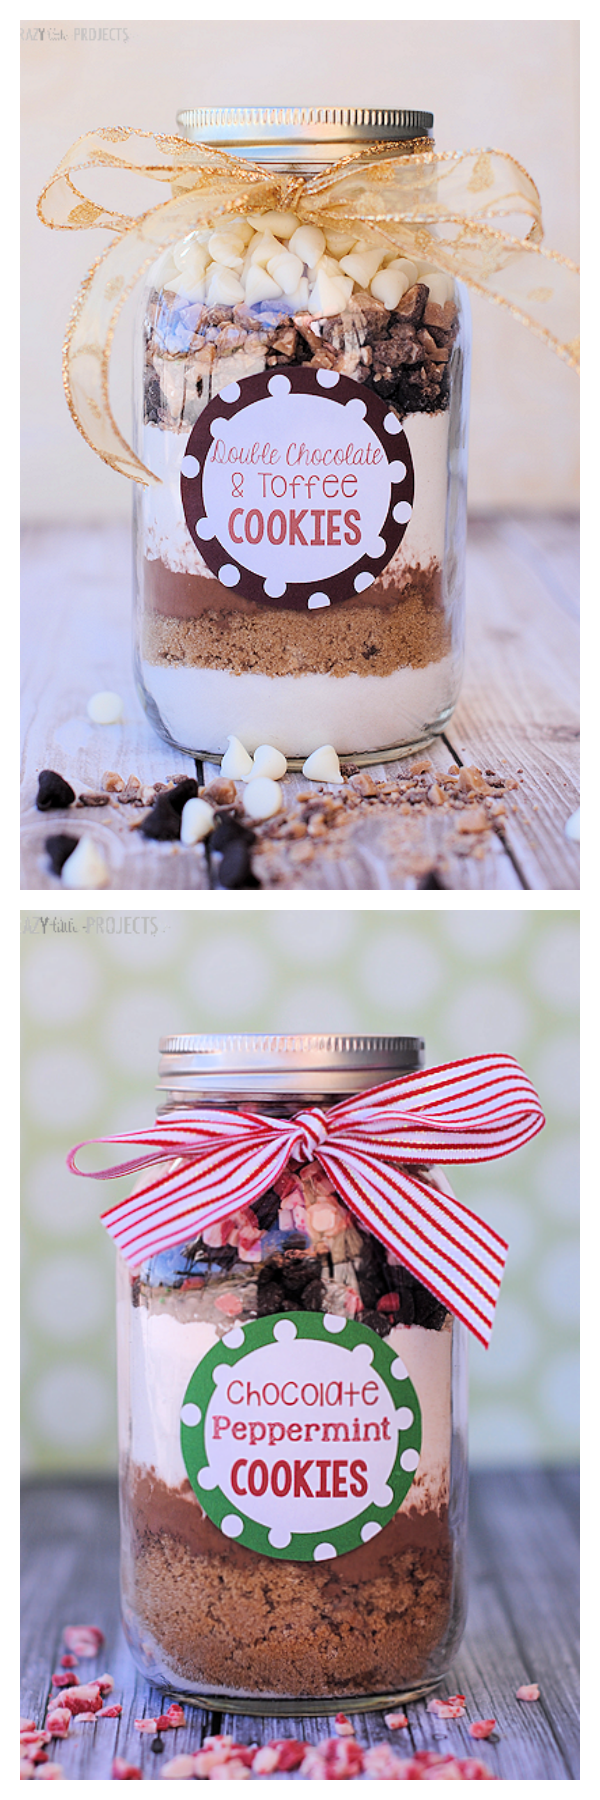 Christmas Cookie Mix in a Jar Gift Idea